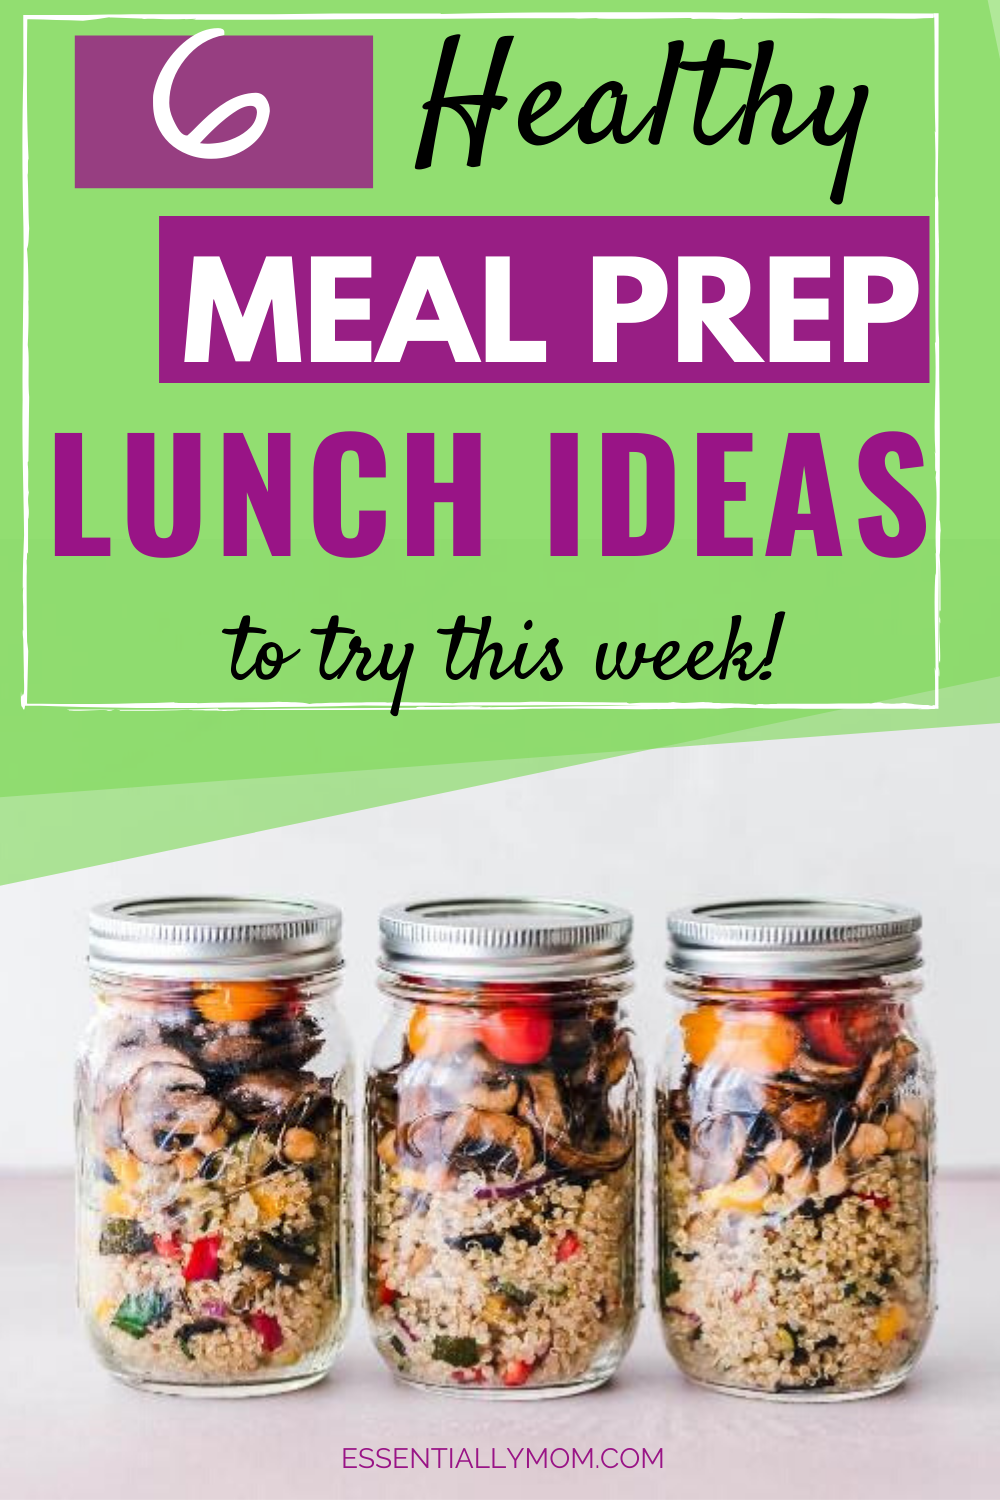 Looking for same time and money? Meal planning is the way to go. These 6 healthy meal prep lunch ideas can be made ahead of time and are easy to make.